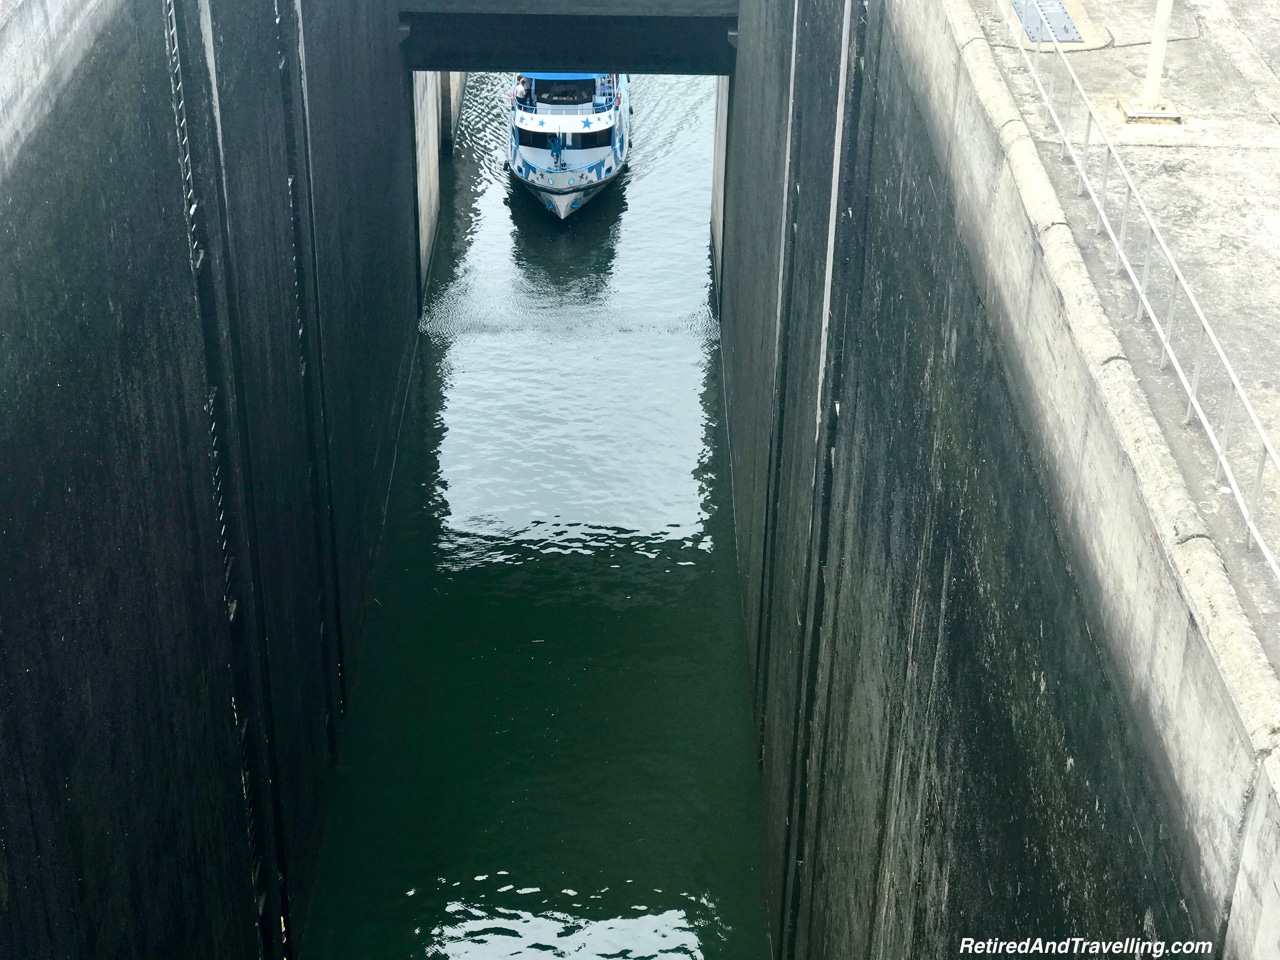 Locks in Regua - Driving Along the Douro River Valley.jpg